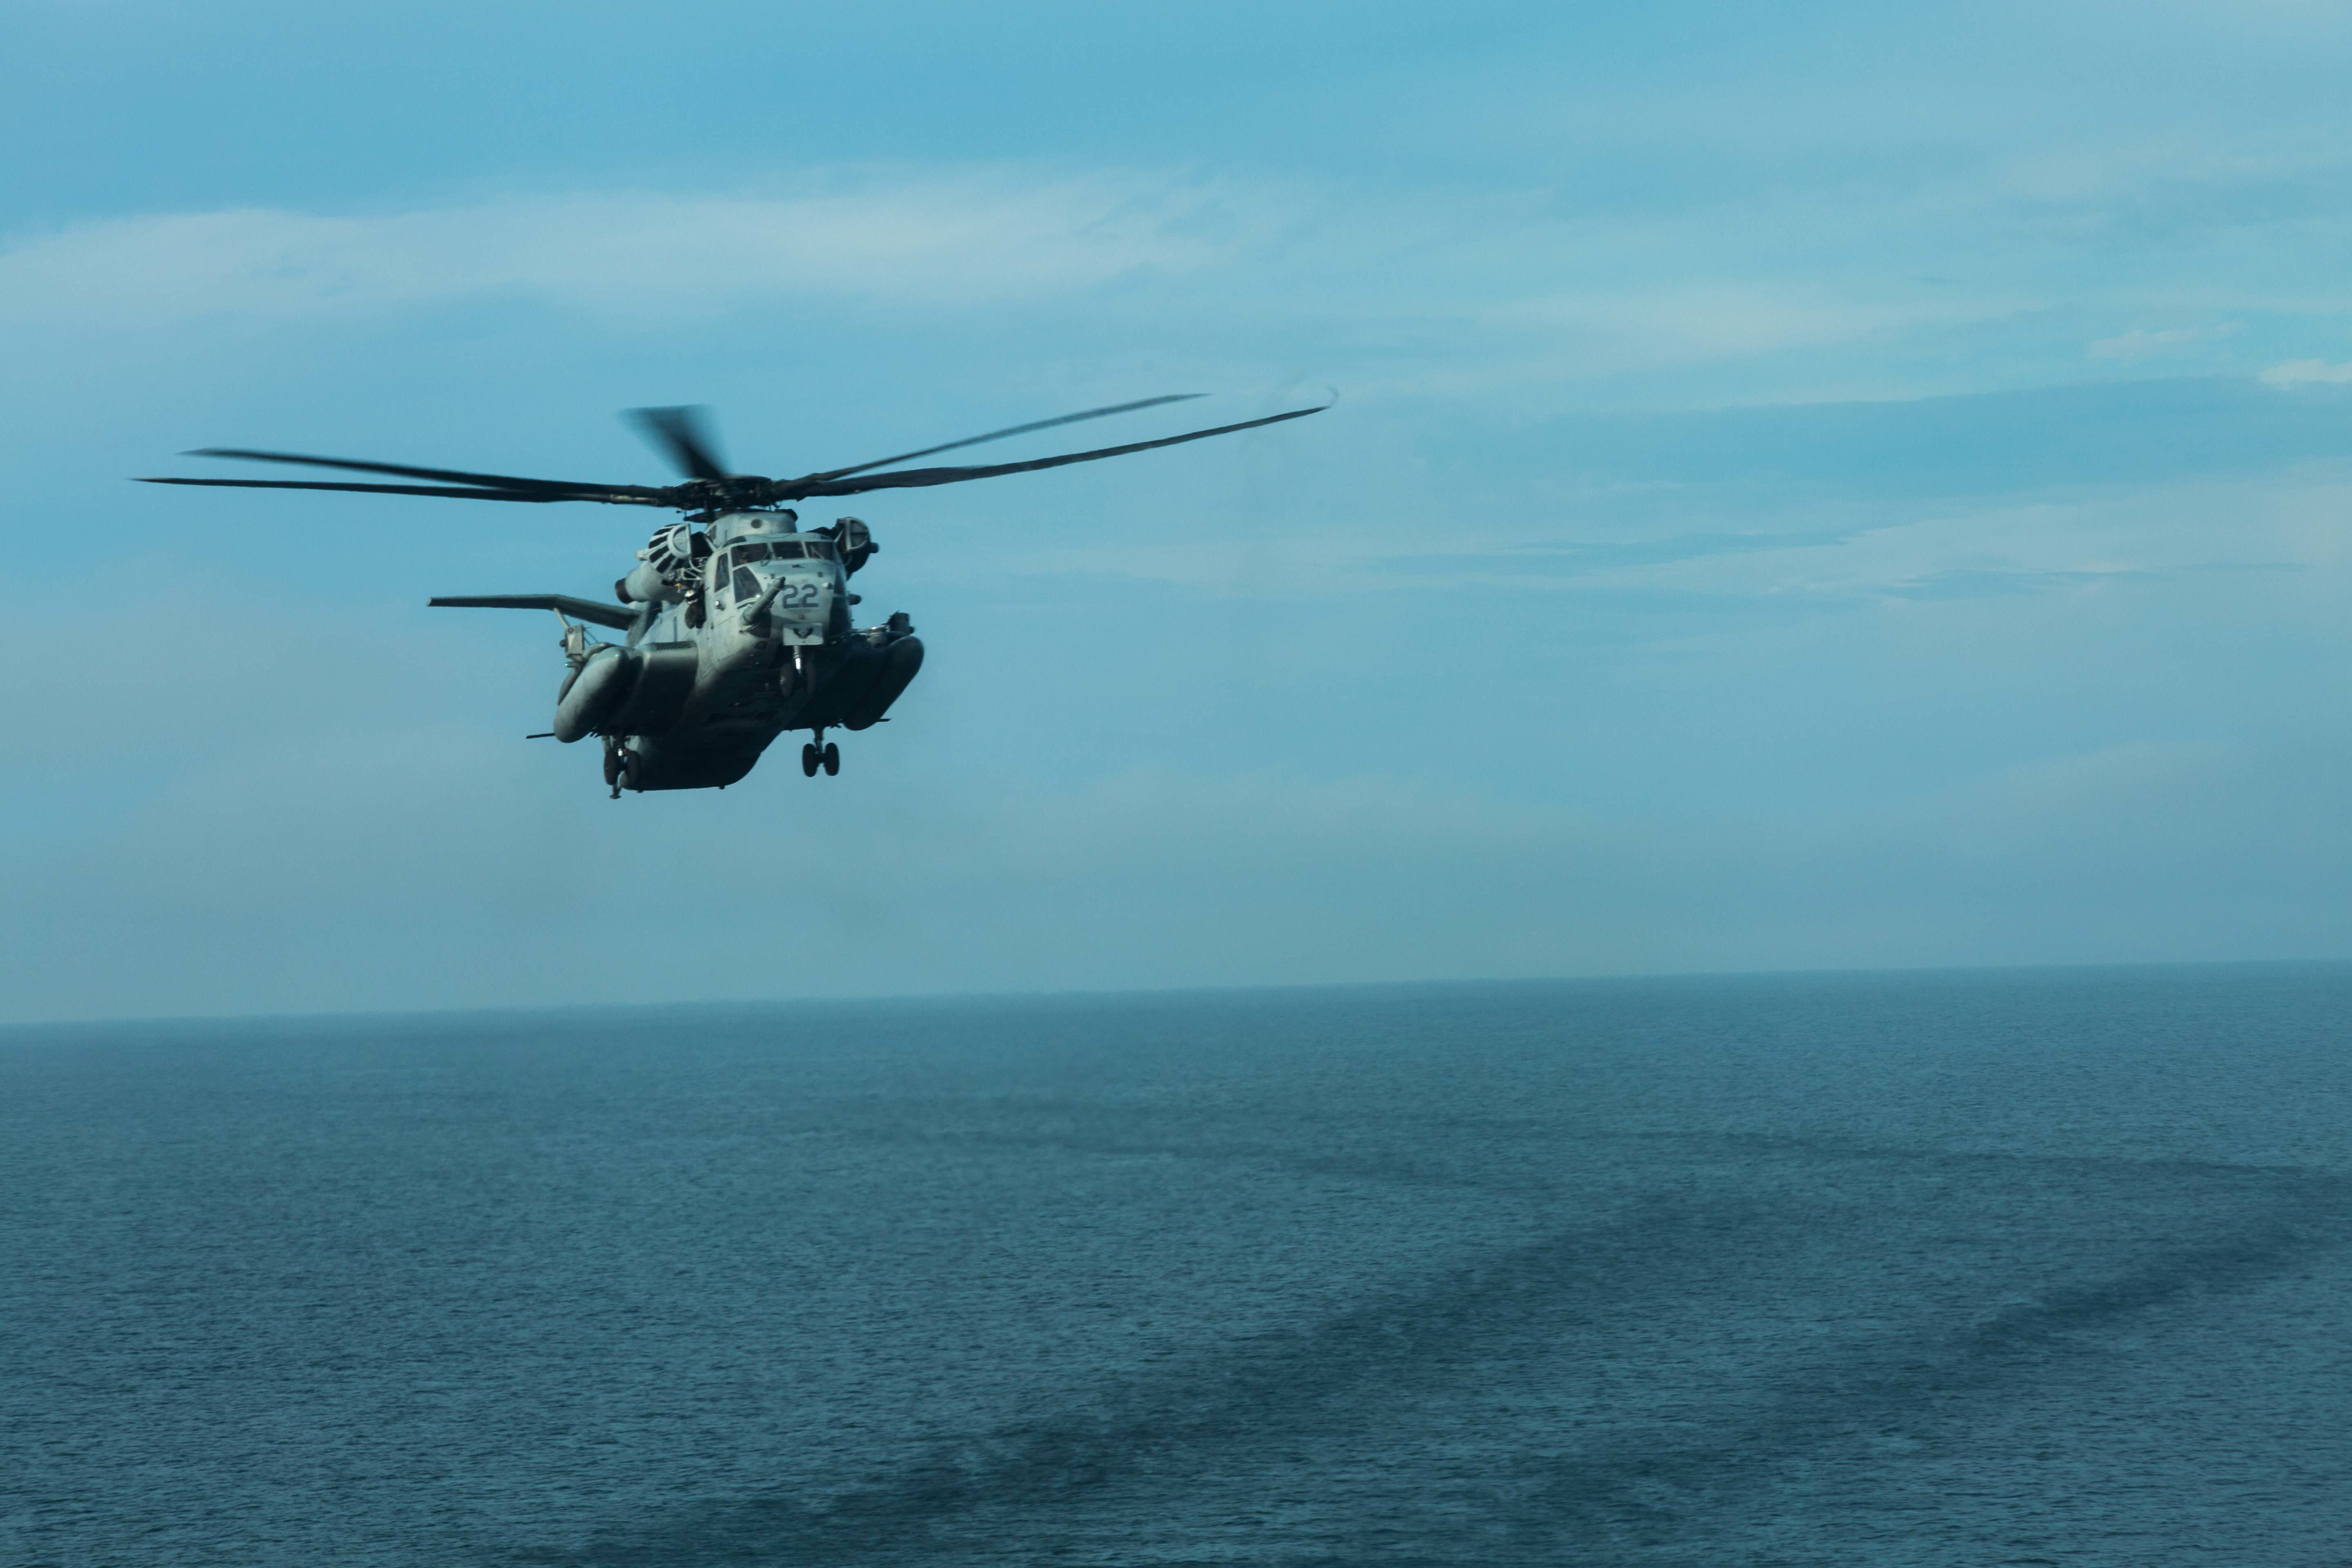 A U.S. Marine Corps CH-53E Super Stallion with Marine Medium Tiltrotor Squadron (VMM) 162 (REIN), 26th Marine Expeditionary Unit (MEU), approaches the flight deck of the amphibious landing dock ship USS New York (LPD 21) during Combined Composite Unit Training Exercise. (Cpl. Jered T. Stone/Marine Corps)